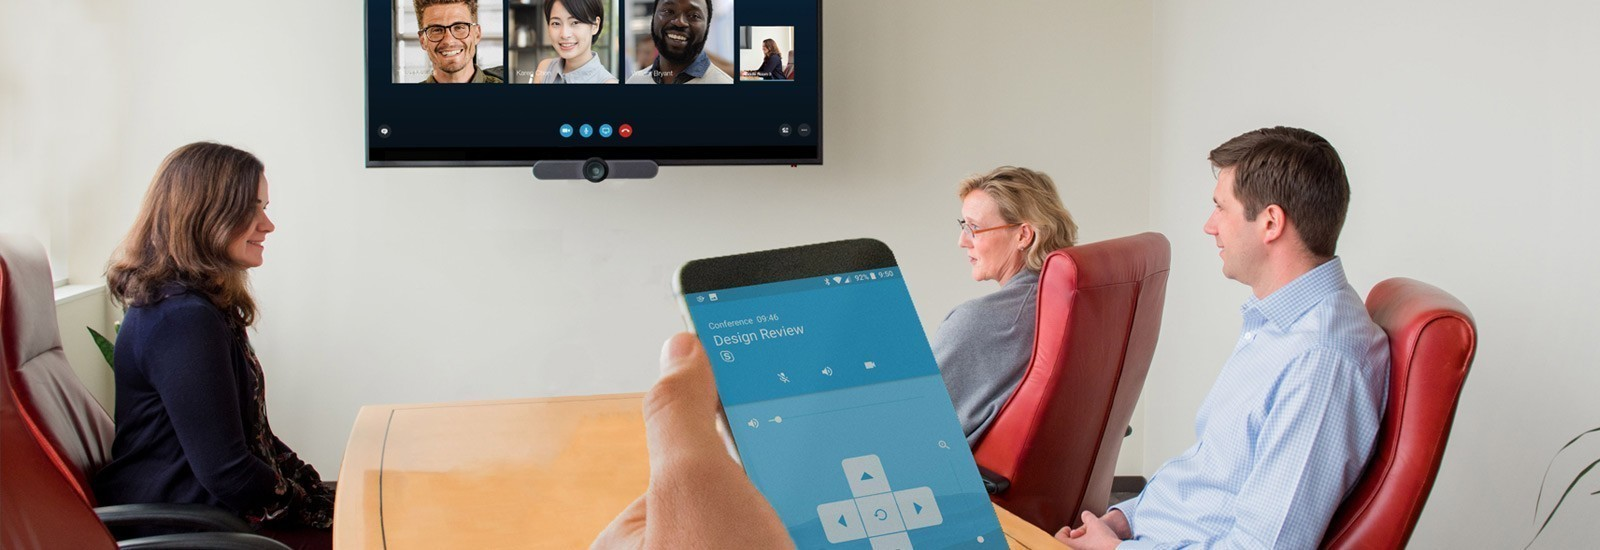 Burlington Startup ZiipRoom Launches Software to Simplify Remote Meetings